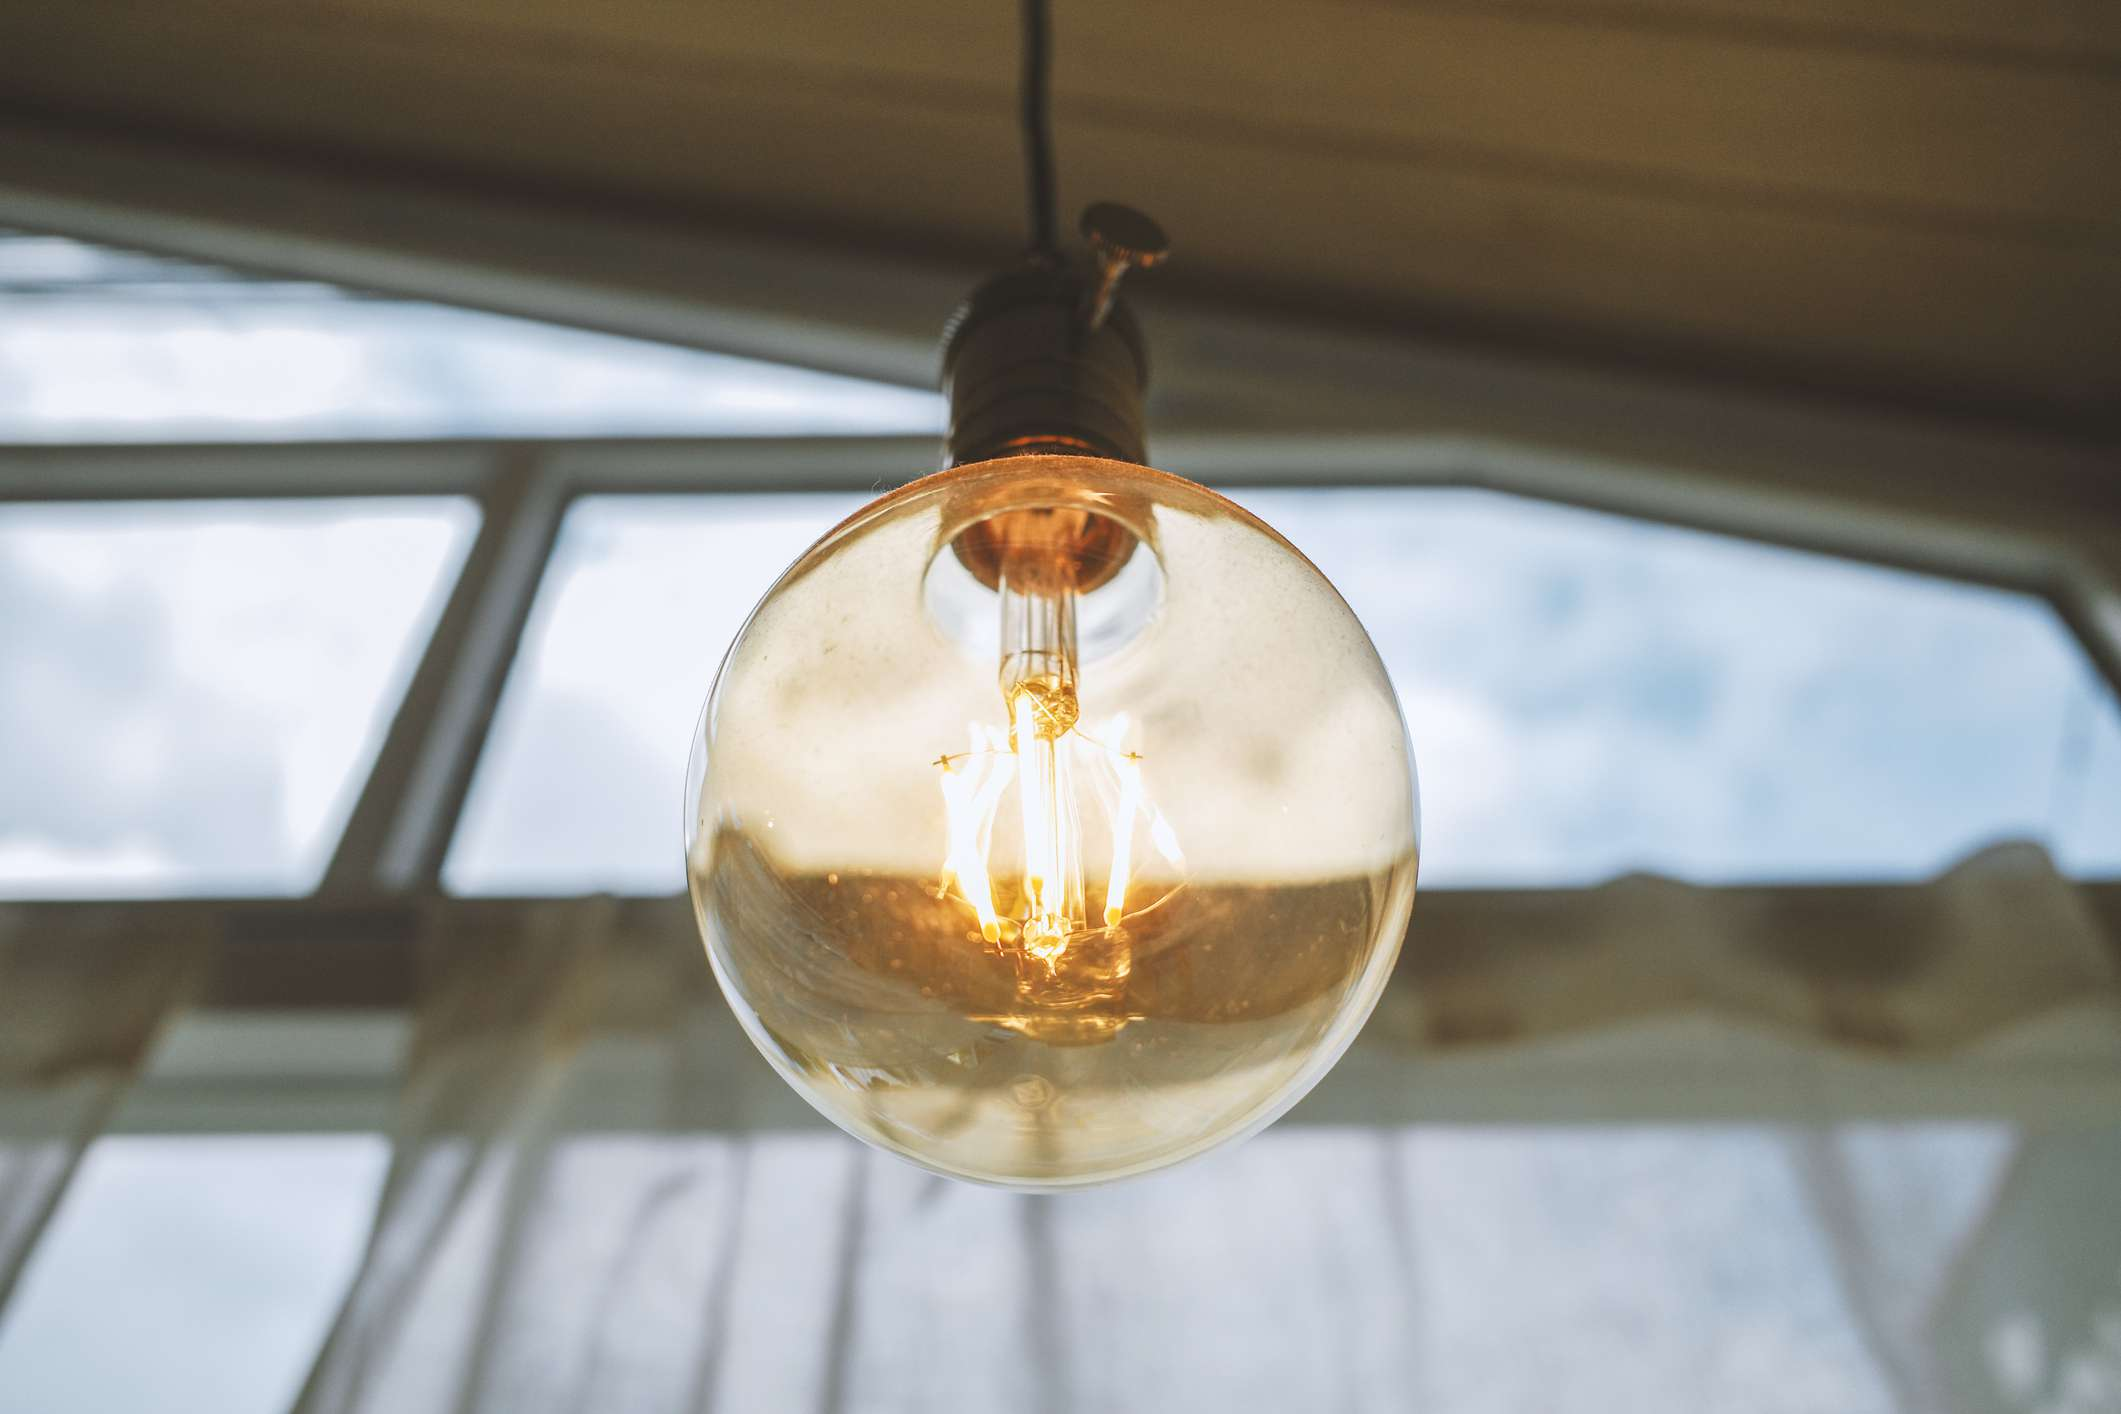 An incandescent light hangs from the ceiling by a window.